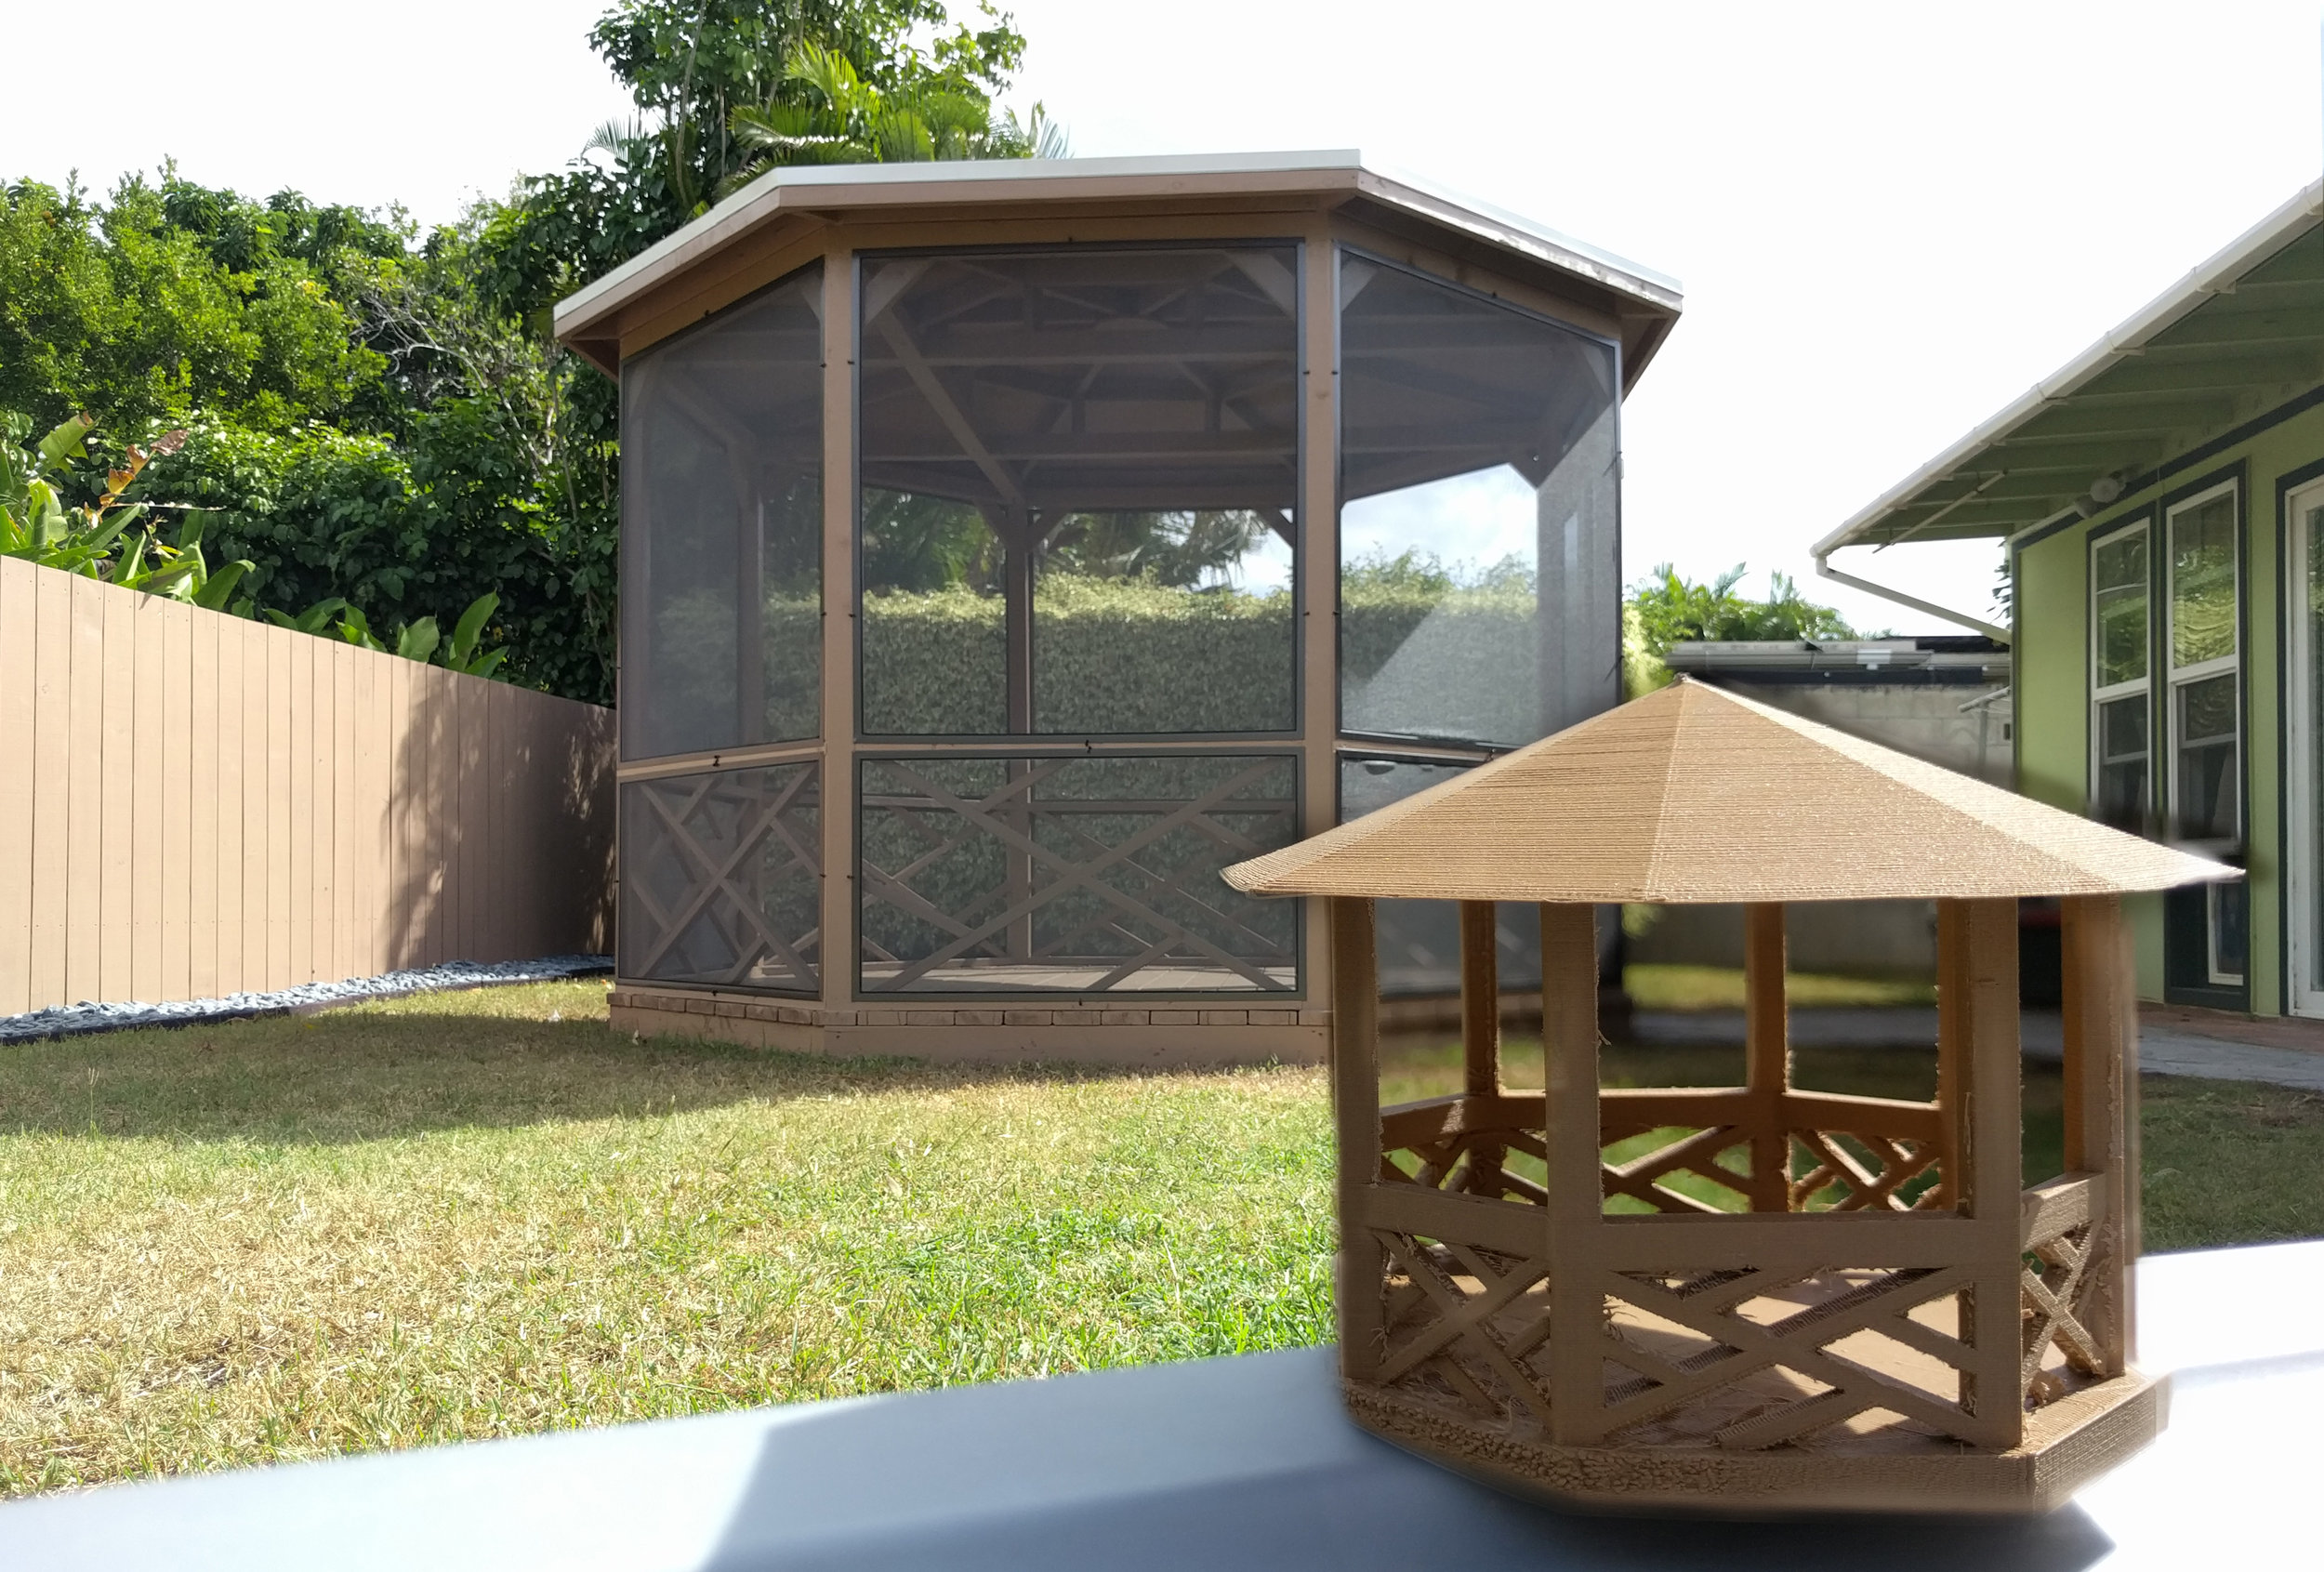 Gazebo and a scale model 3d printed